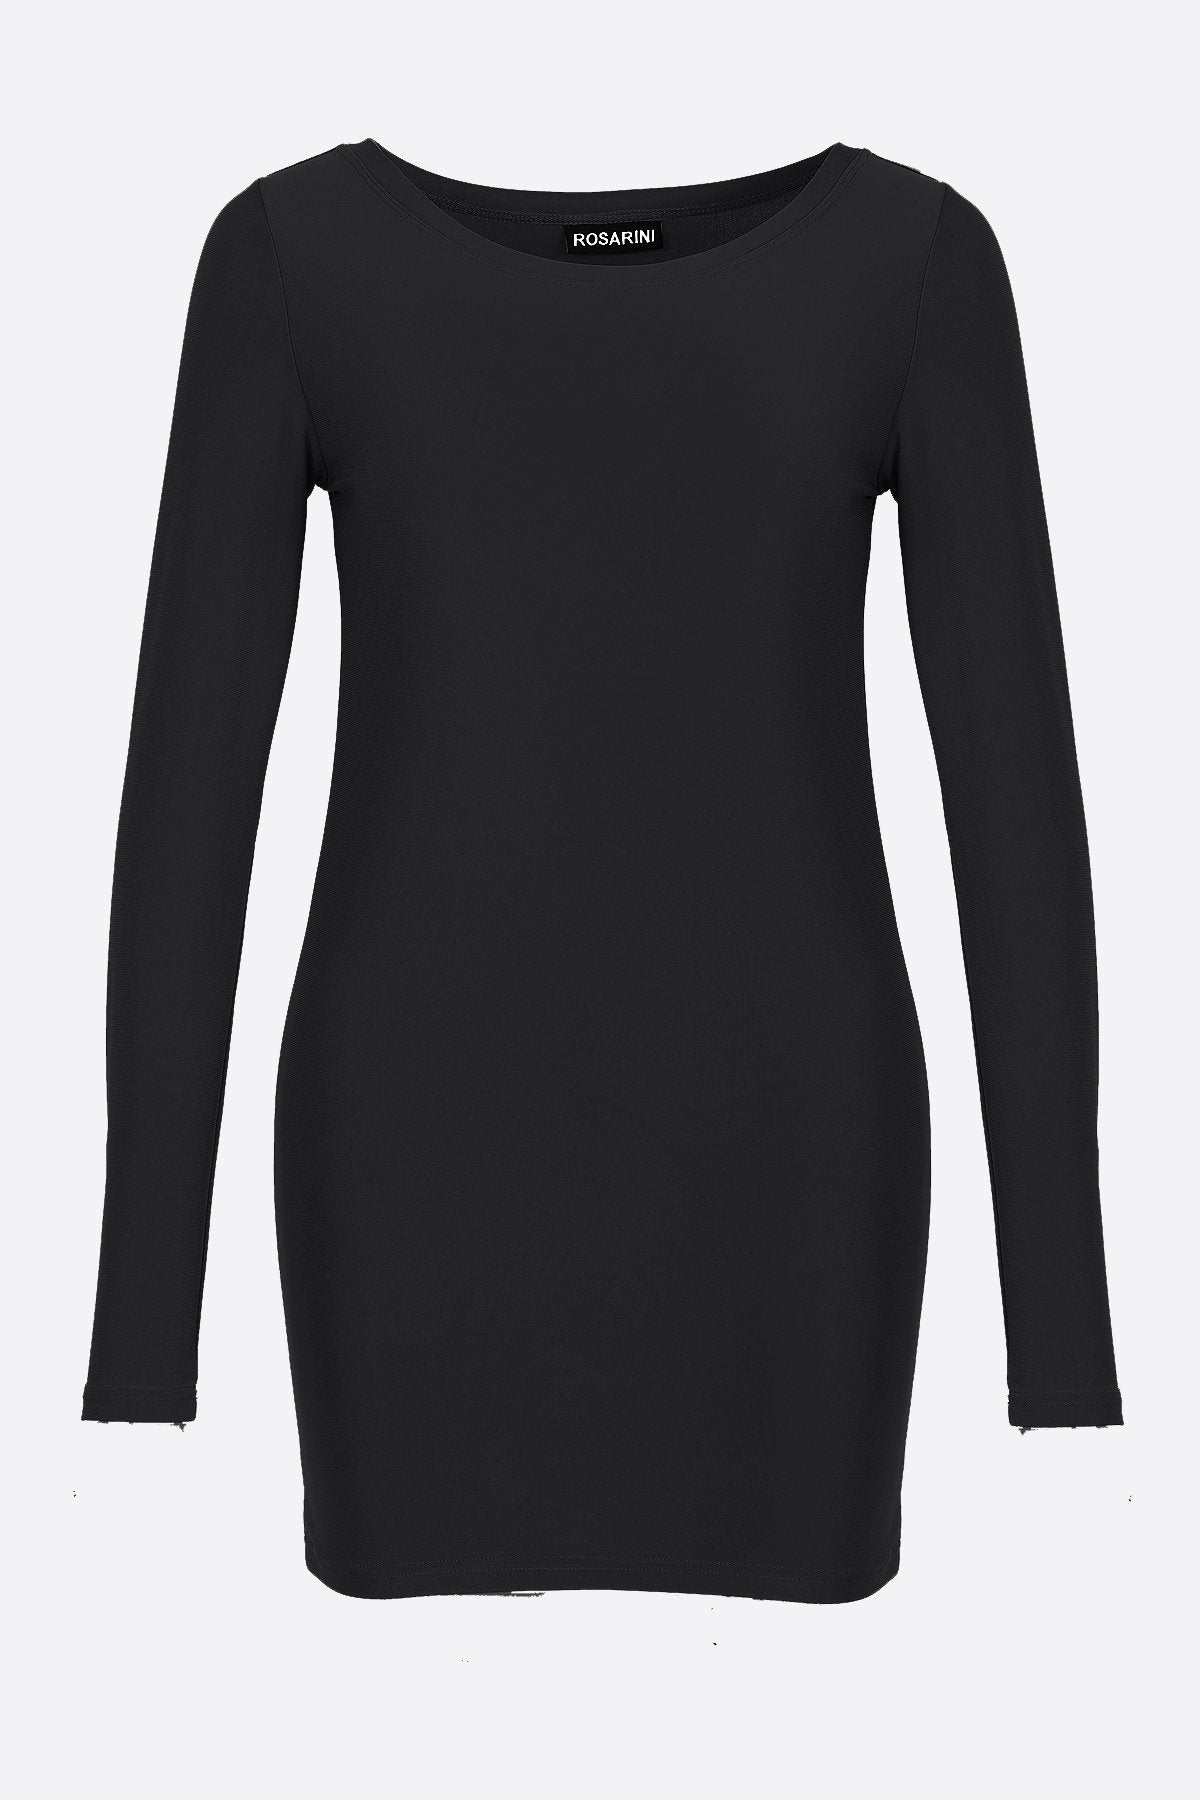 Women's Long Sleeve Crew Neck Top Black Rosarini